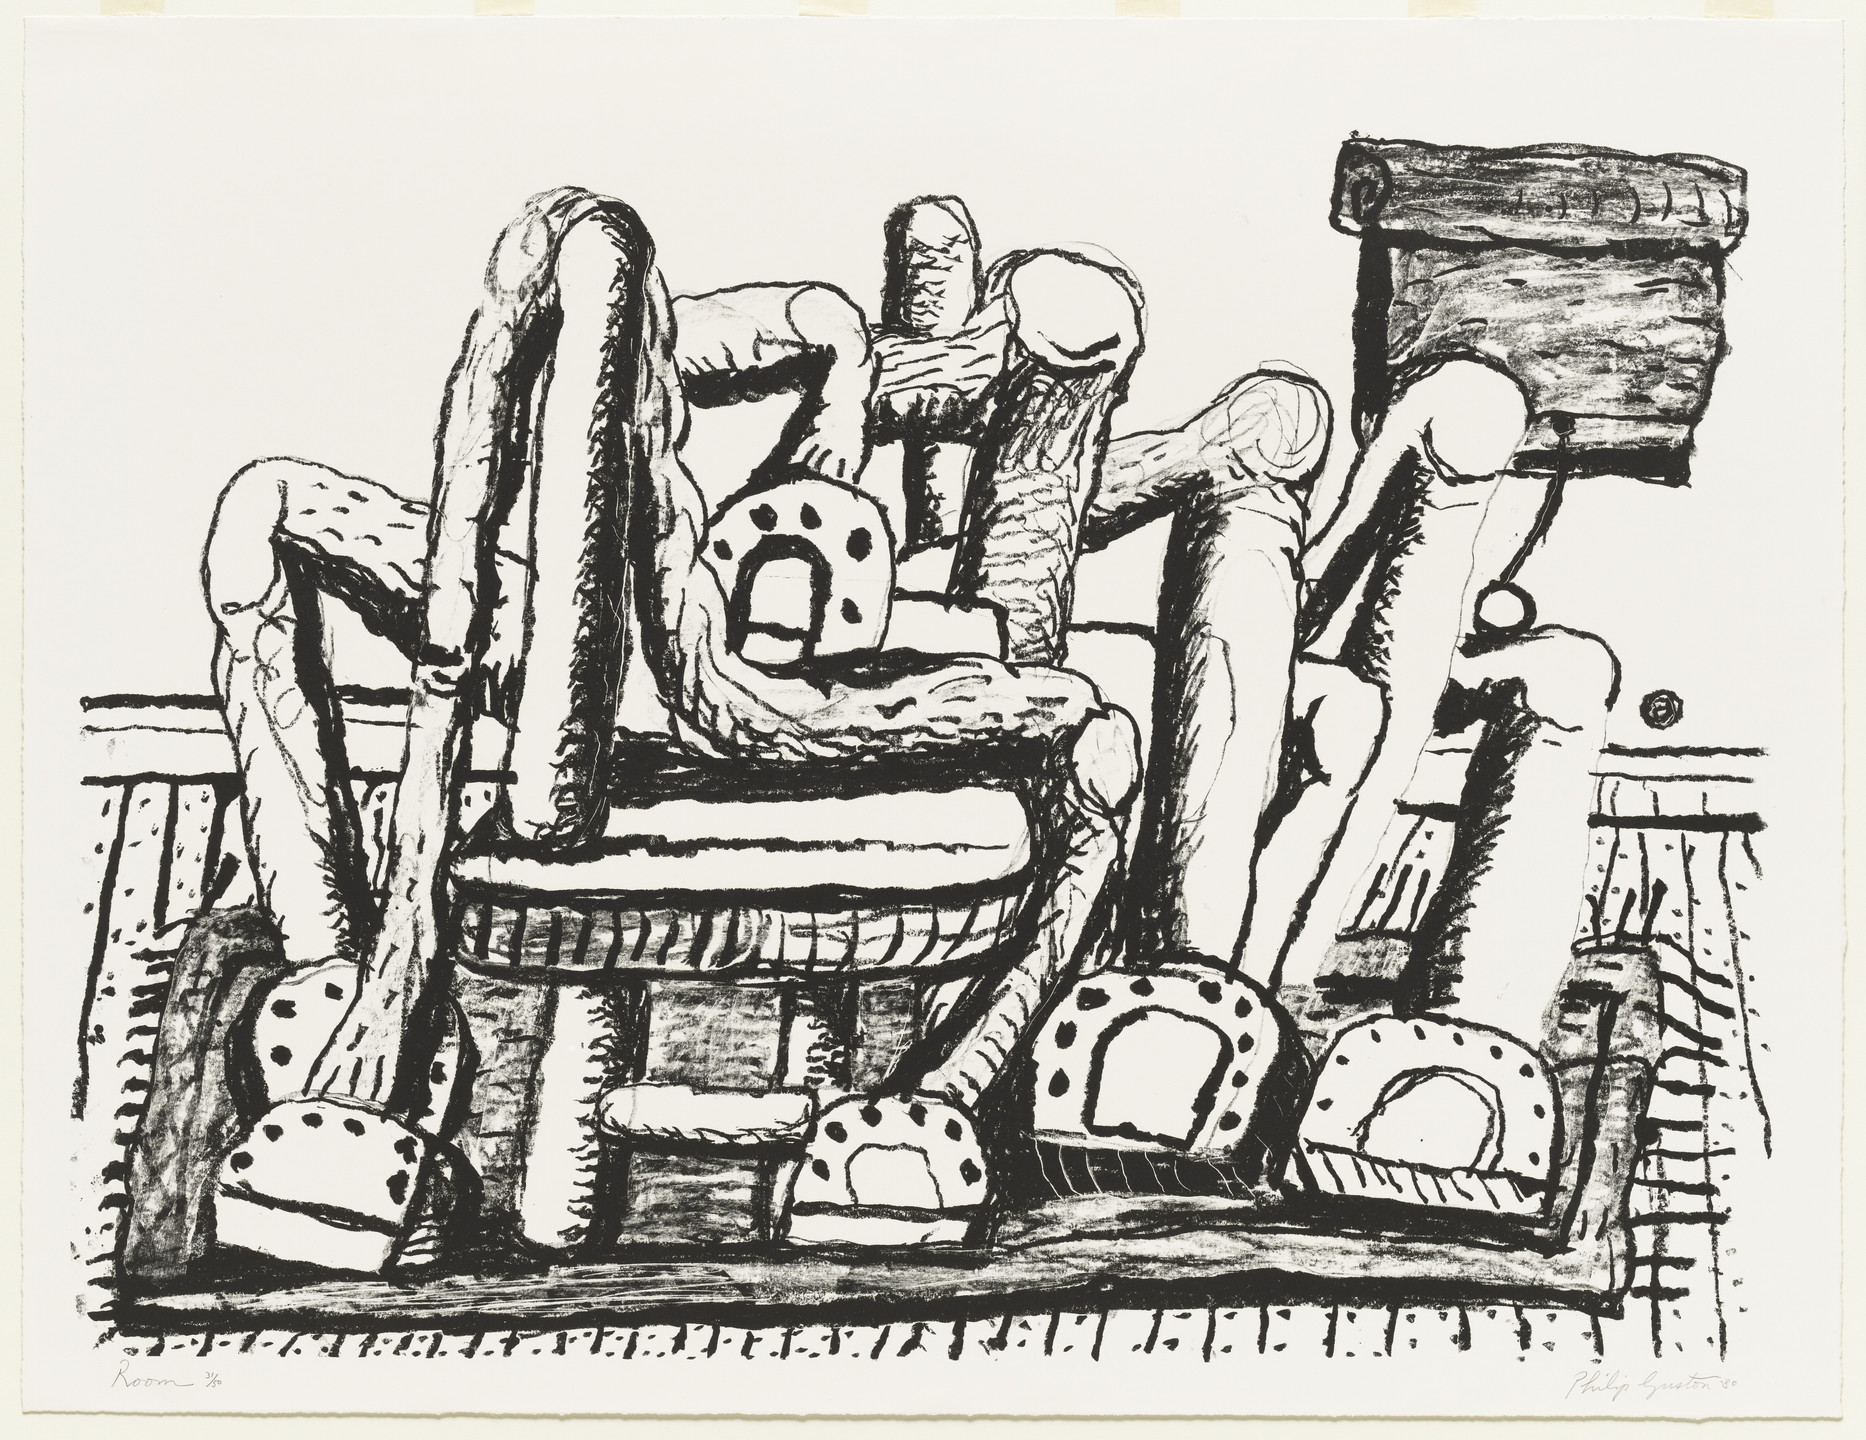 Philip Guston. Room. 1980